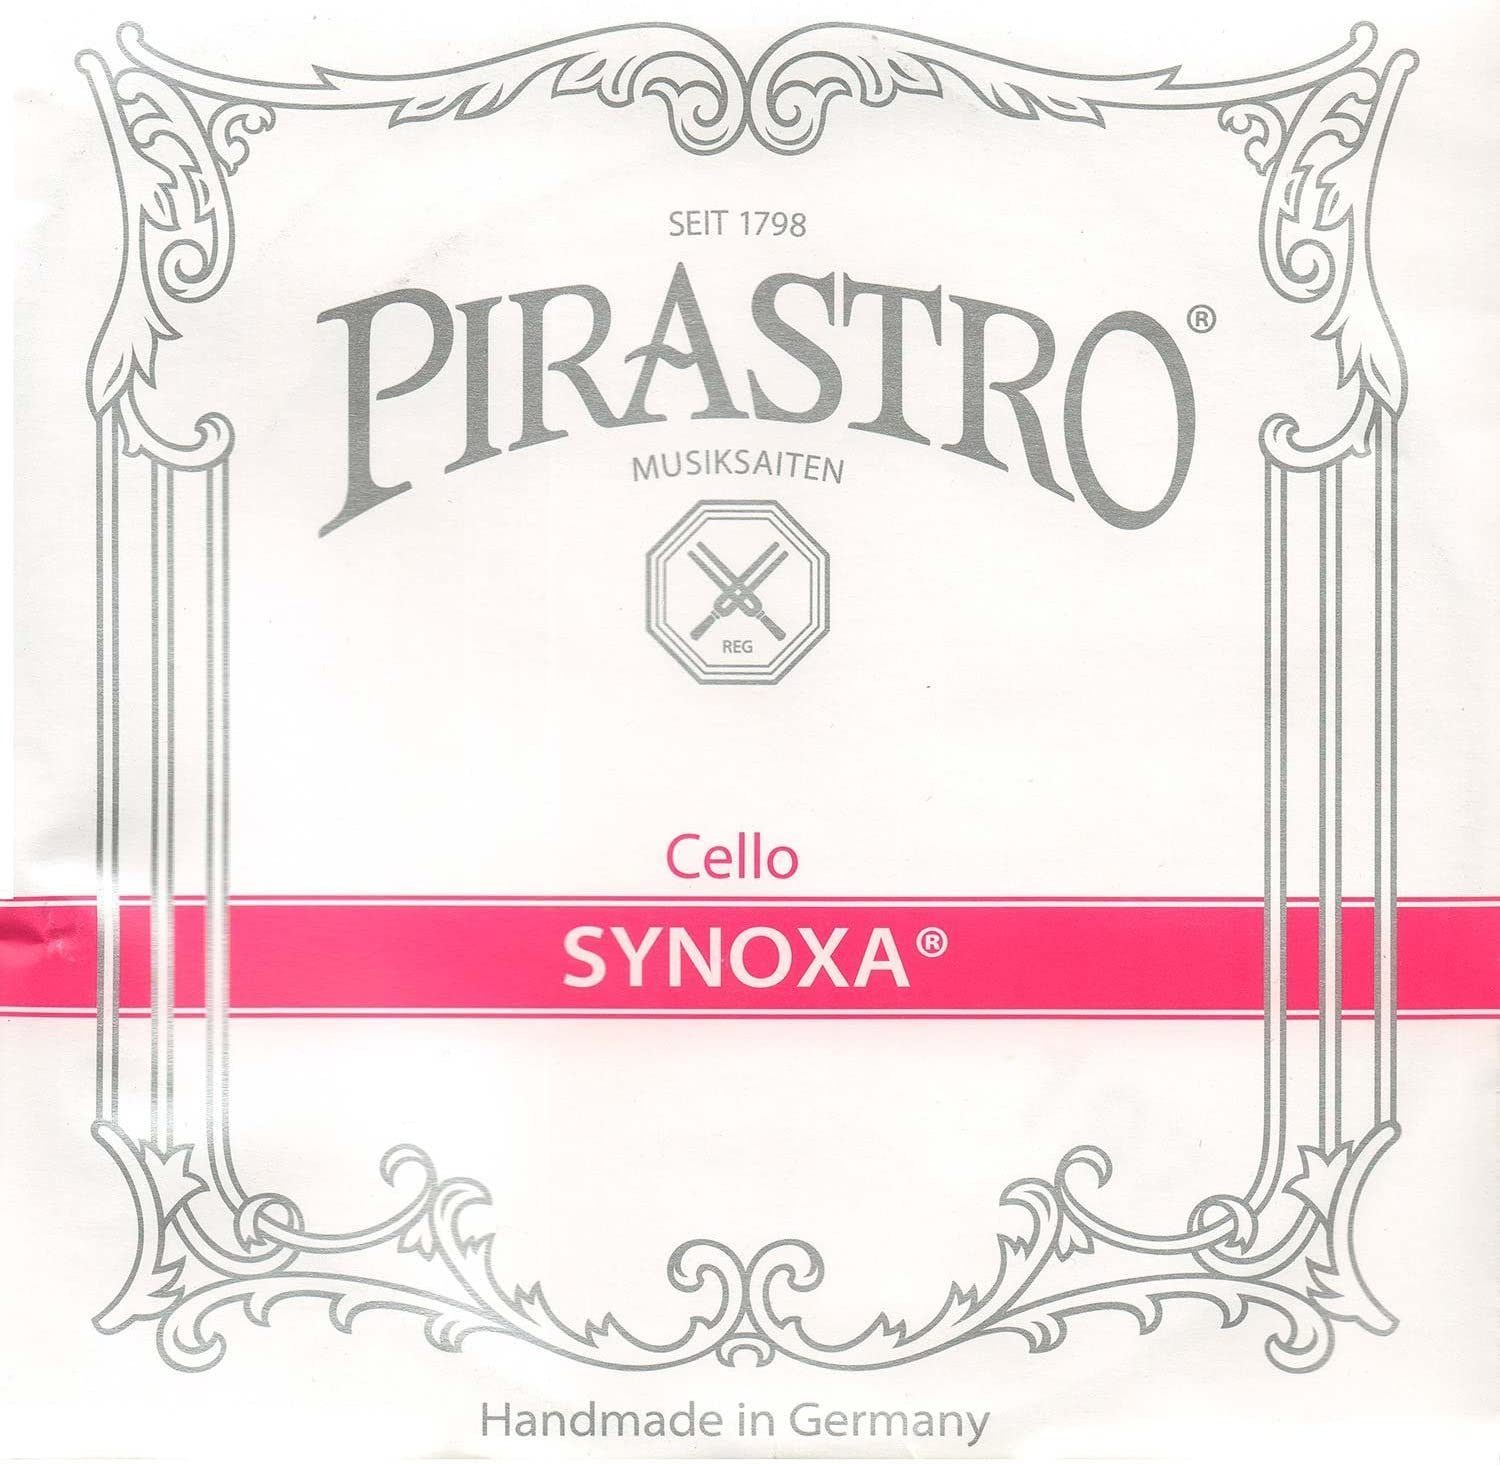 Pirastro Synoxa Max 79% OFF 4 Cello Challenge the lowest price of Japan ☆ String Medium Gauge - Set